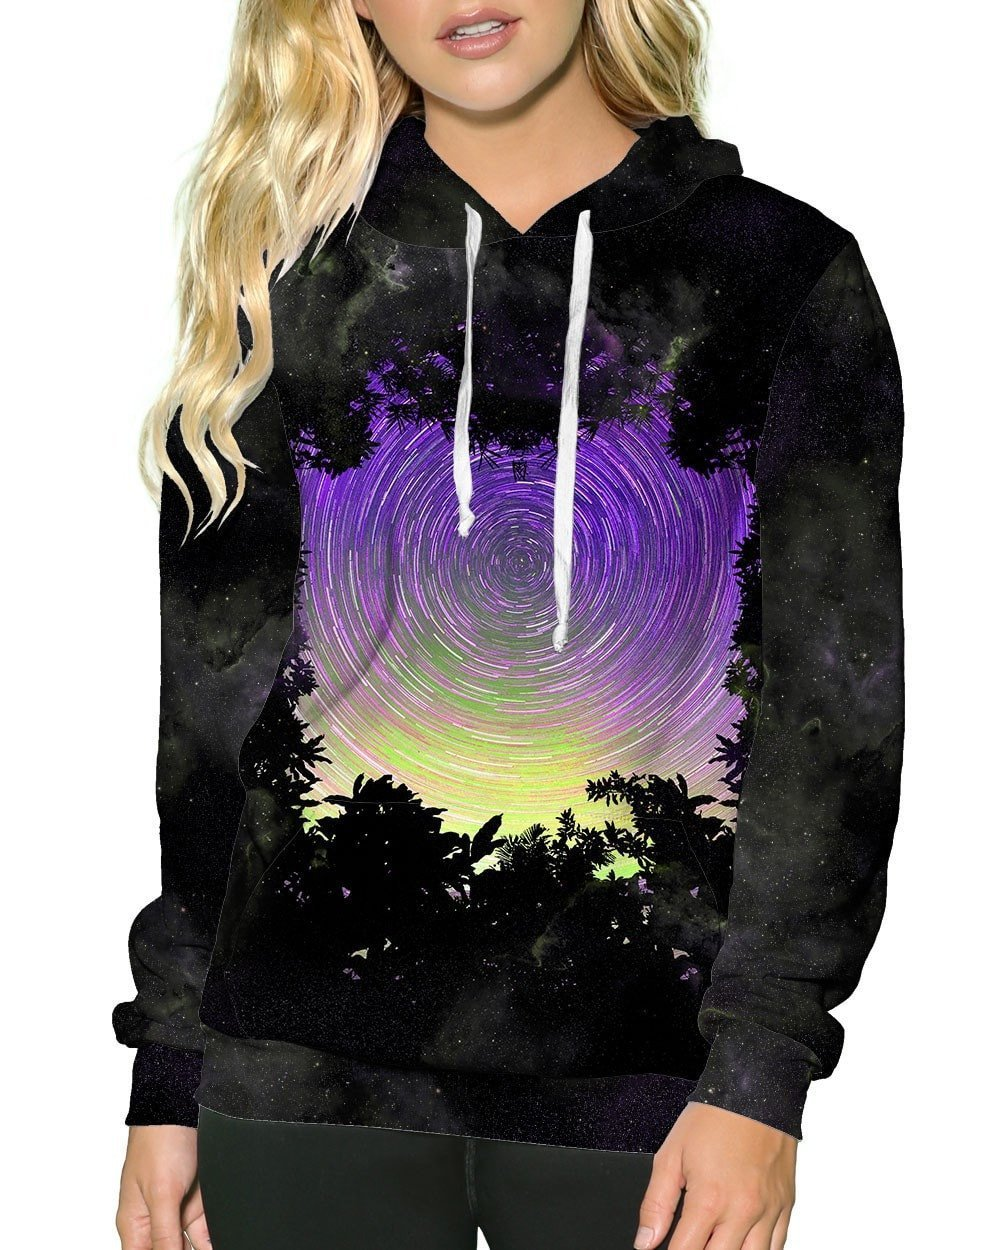 Astro Spiral Pullover Hoodie